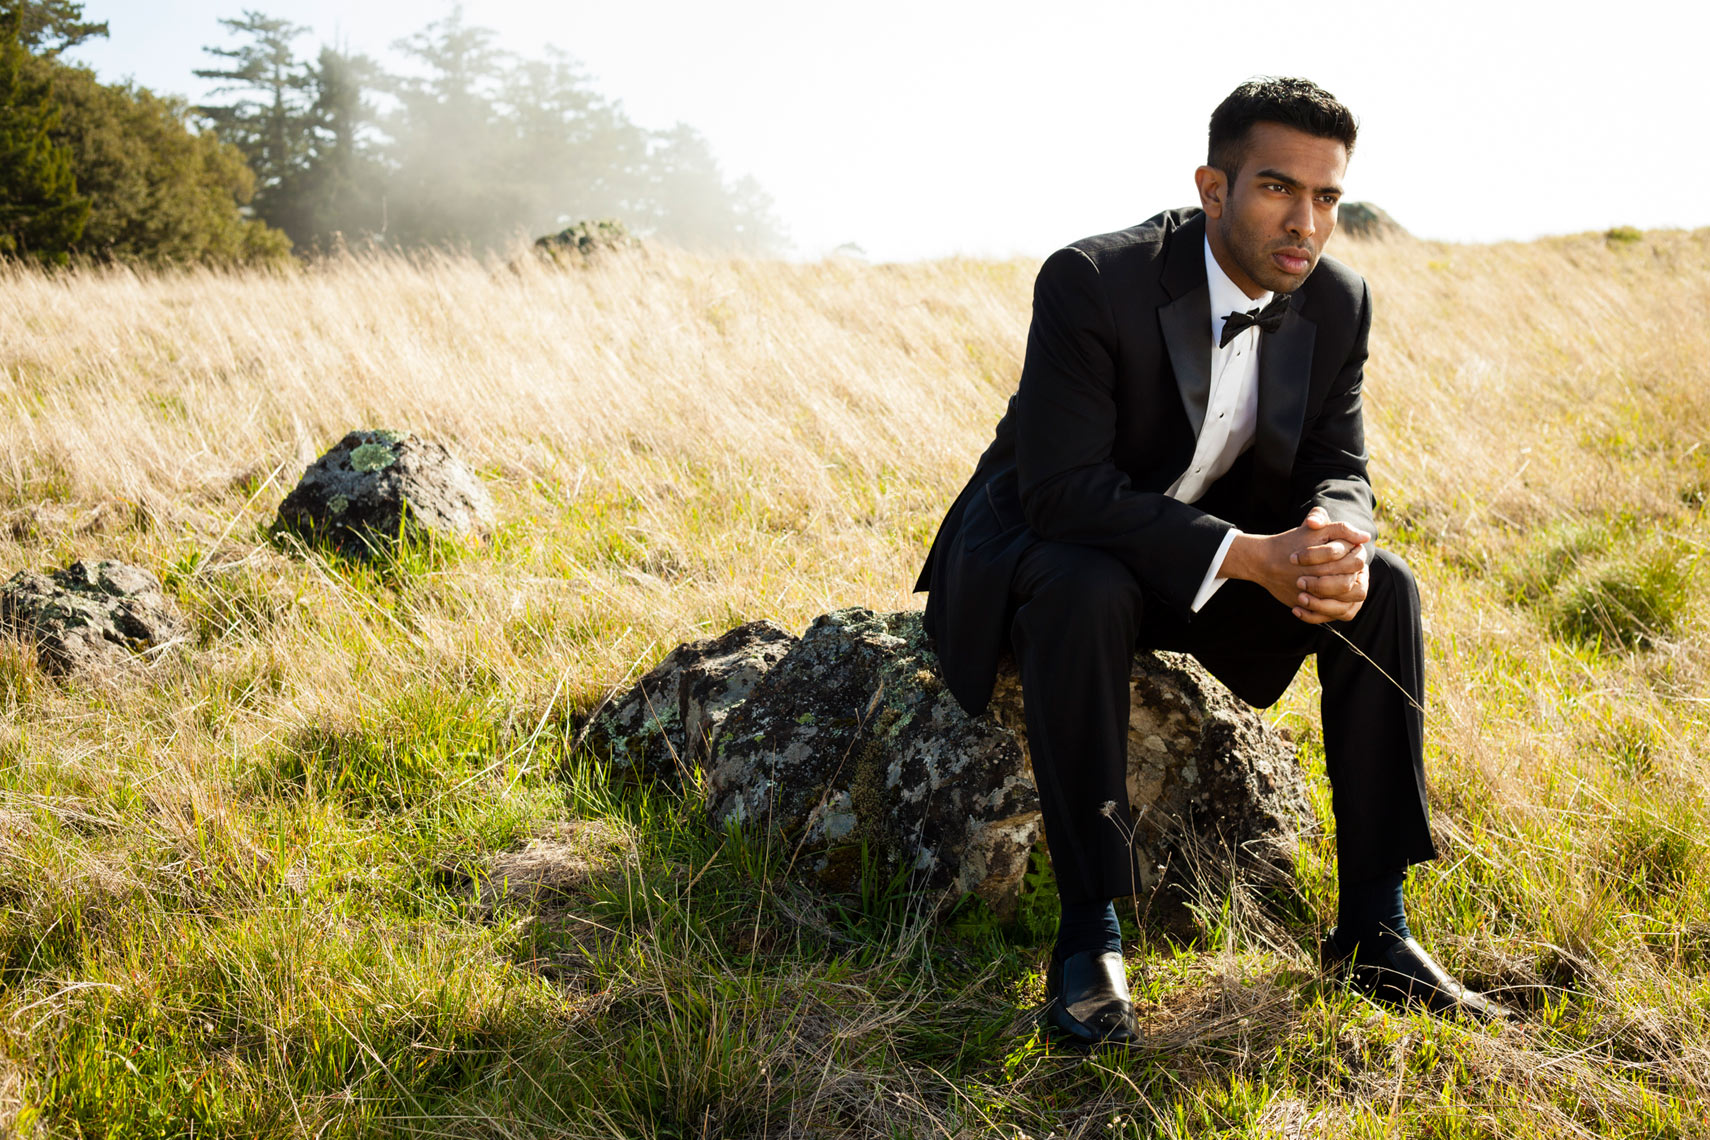 editorial_lifestyle_male_man_tuxedo_nature_landscape_Amanda_Hibbert_Photography_2__MG_4660_DesignX